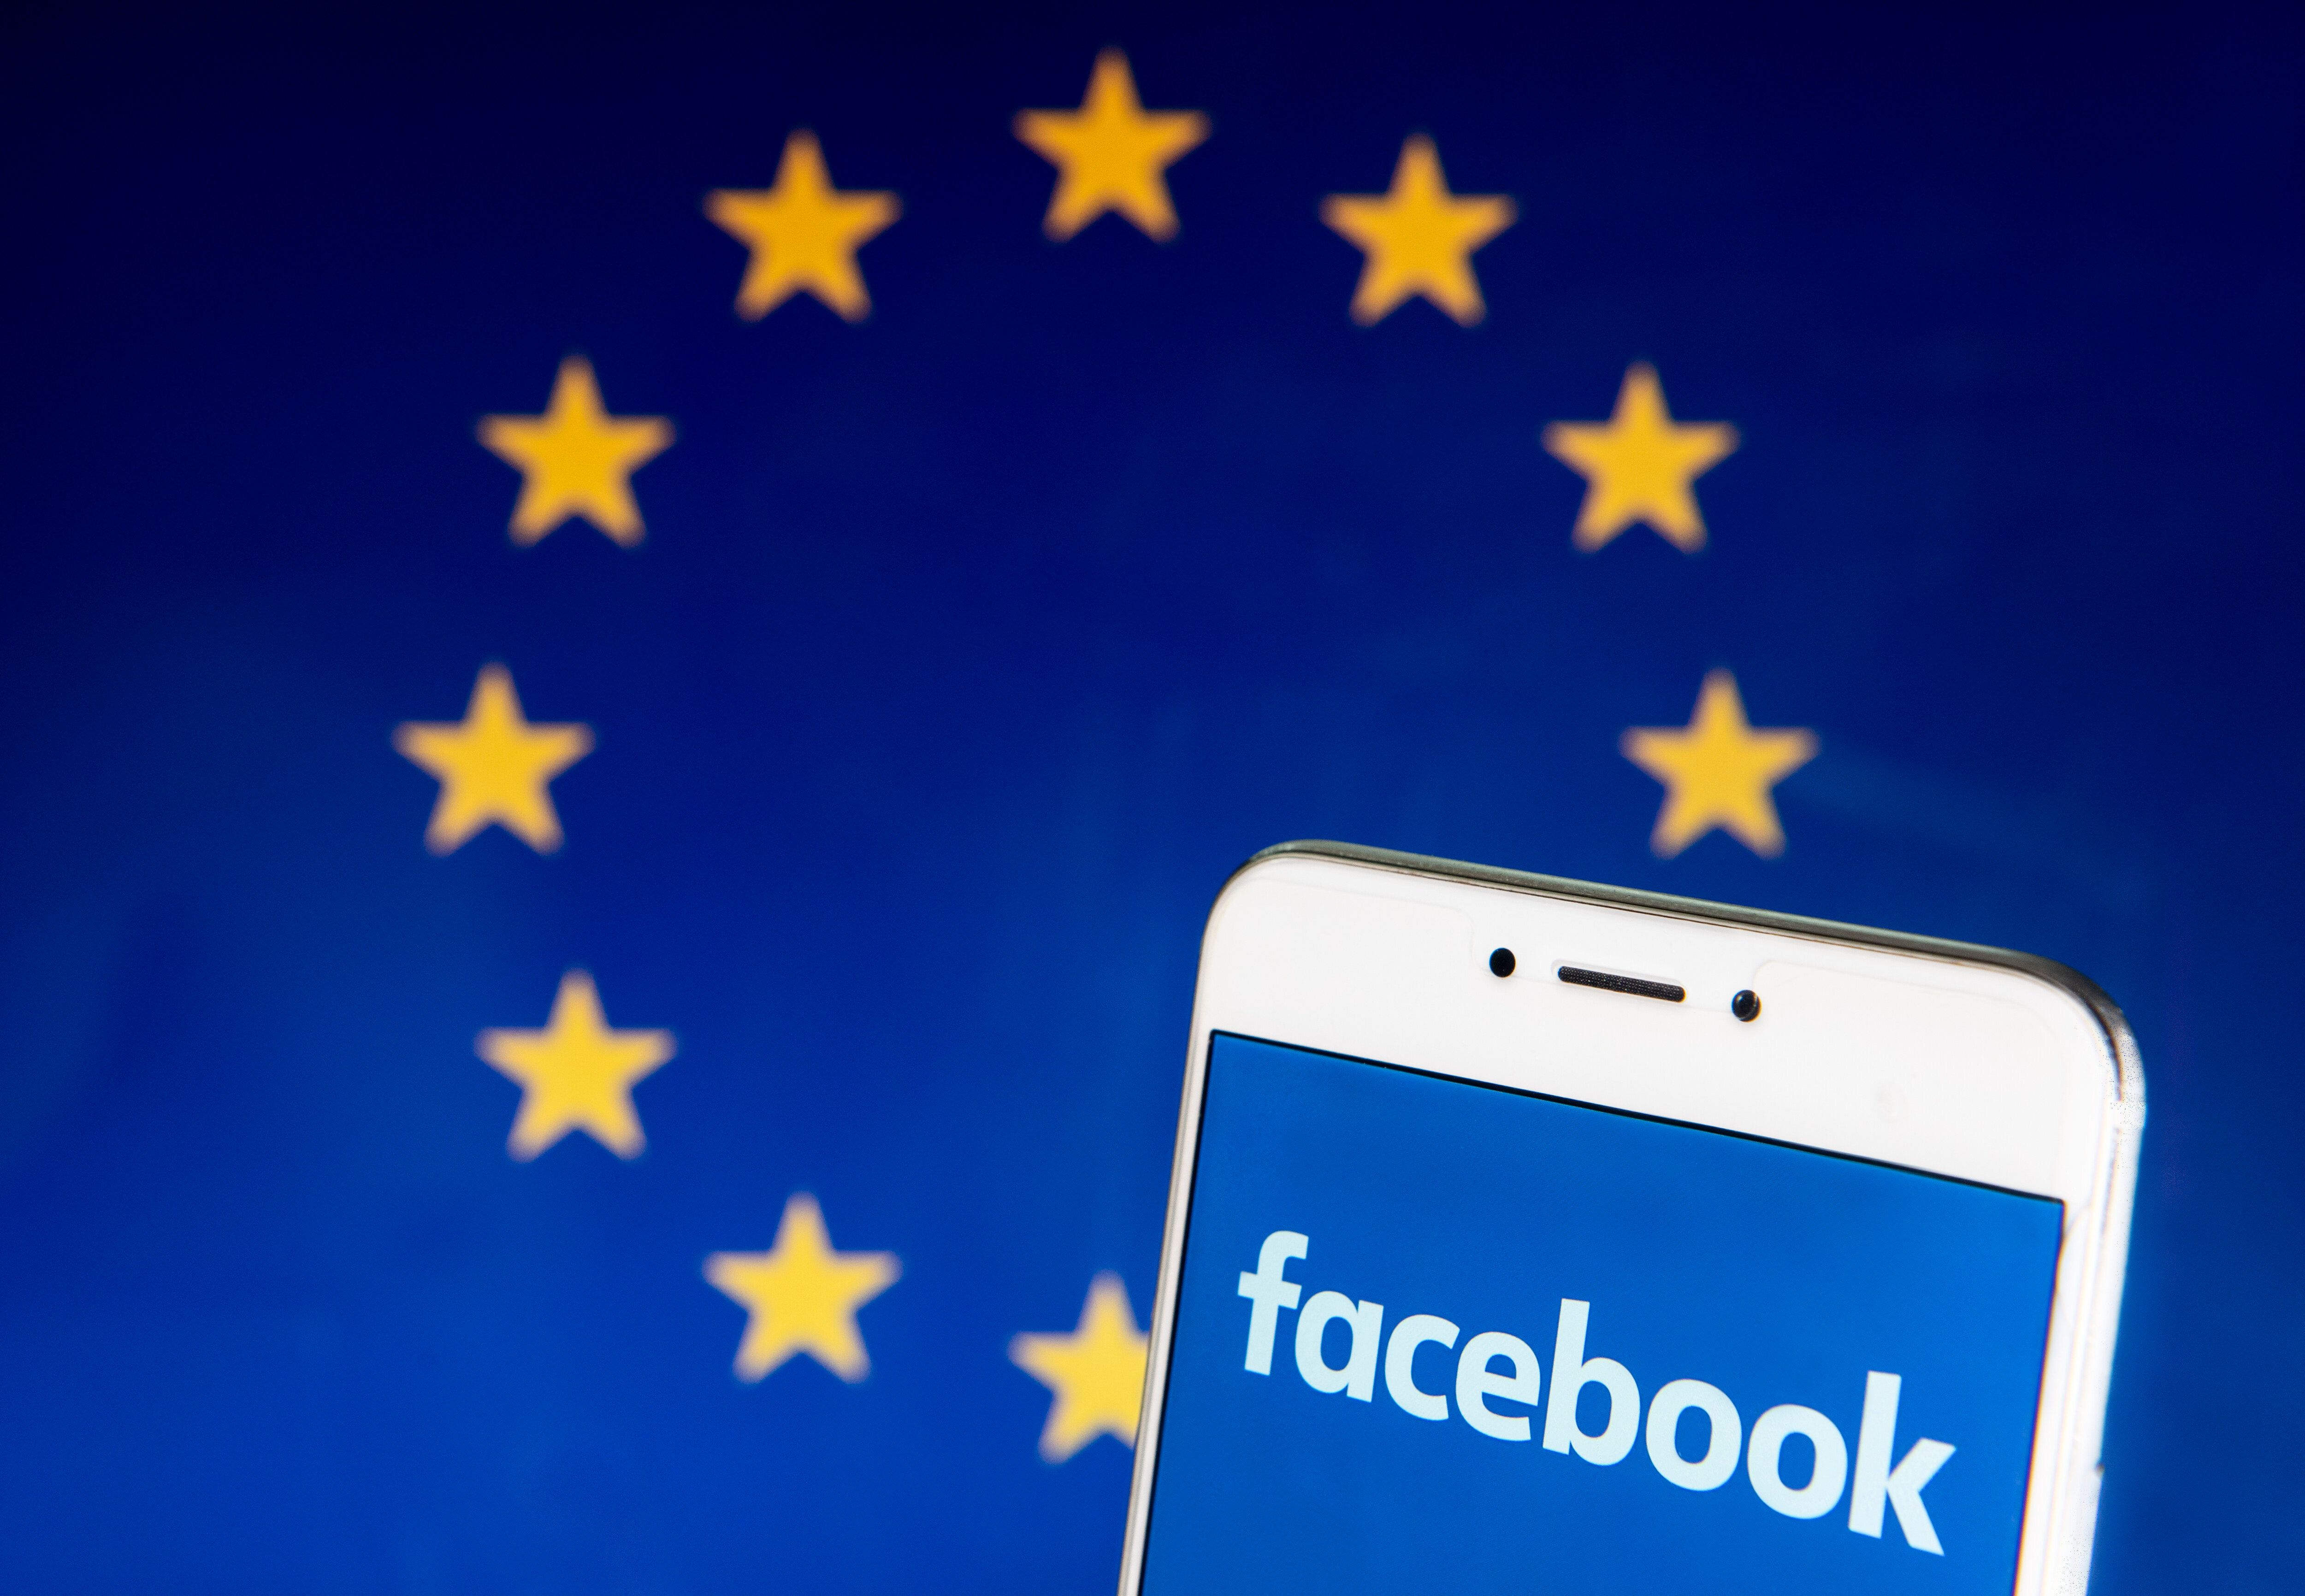 HONG KONG - 2019/04/21: In this photo illustration a American online social media and social networking service company Facebook logo is seen on an Android mobile device with the European Union flag in the background. (Photo Illustration by Budrul Chukrut/SOPA Images/LightRocket via Getty Images)